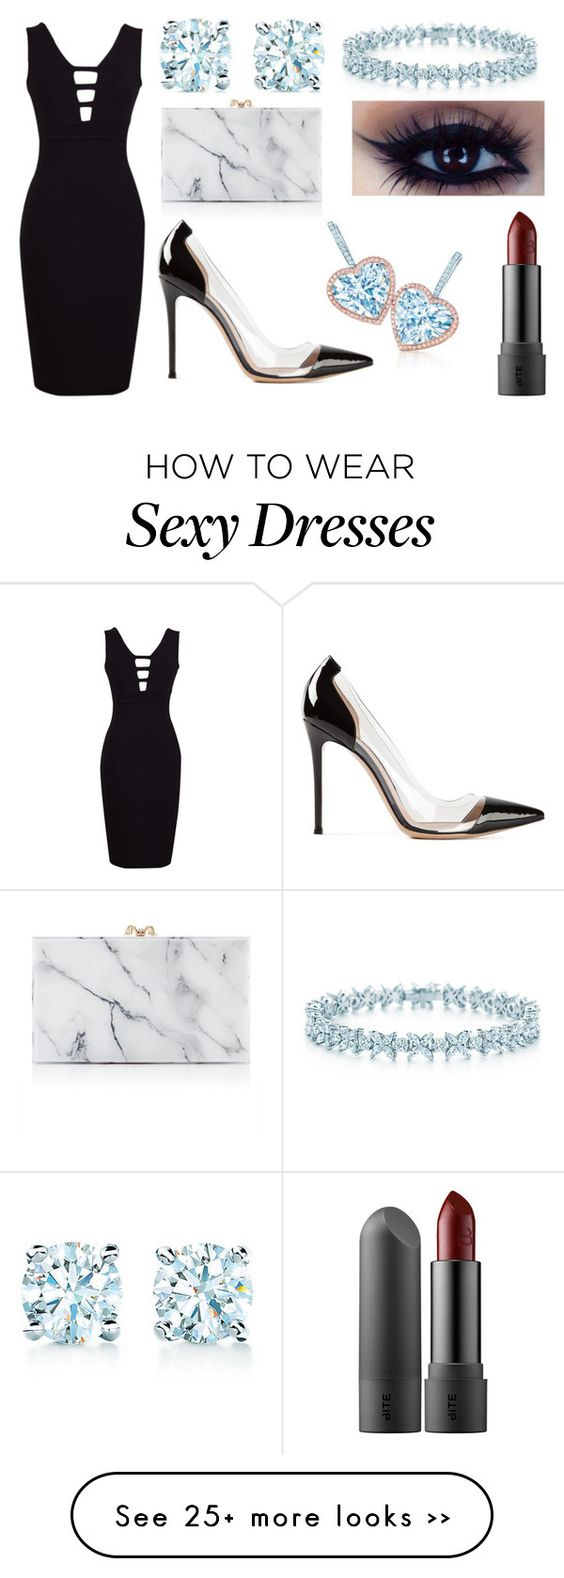 """Untitled #1"" by kenzienicole566 on Polyvore featuring Charlotte Olympia, Tiffany & Co. and Gianvito Rossi"